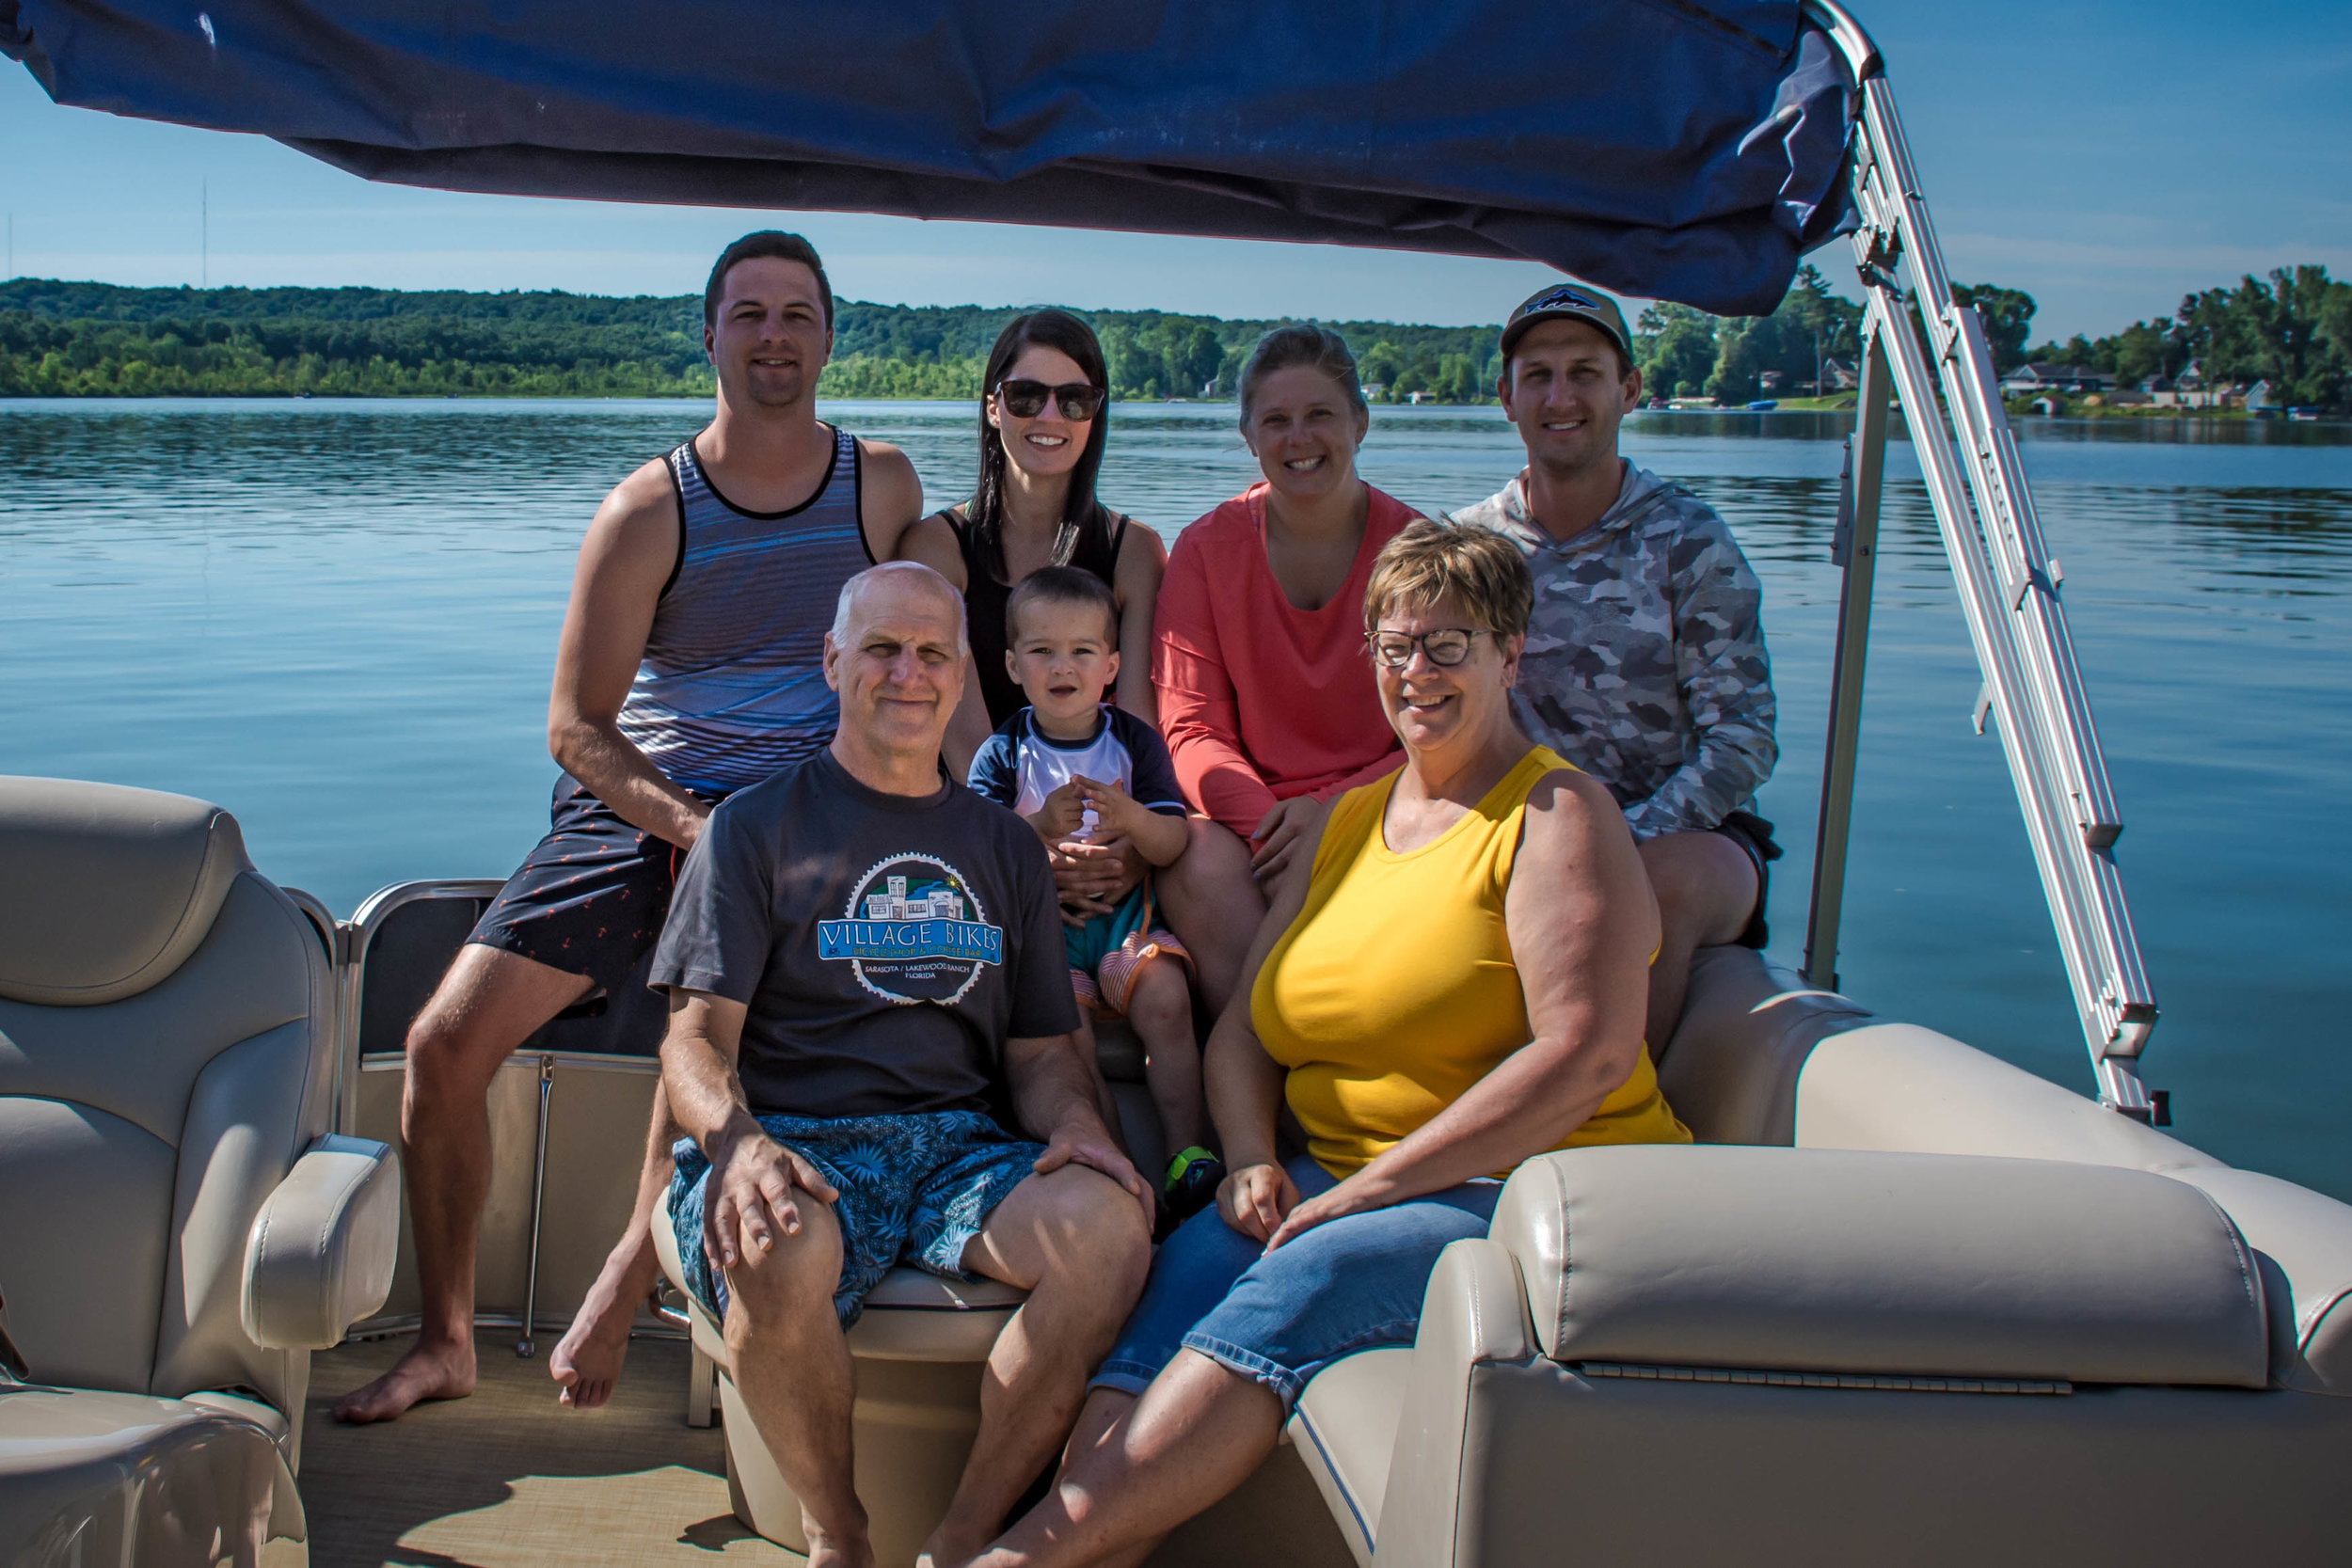 There is nothing better than starting our summer off with a family vacation on the lake! We spent 4 days together, boating, swimming, fishing, eating and laughing!